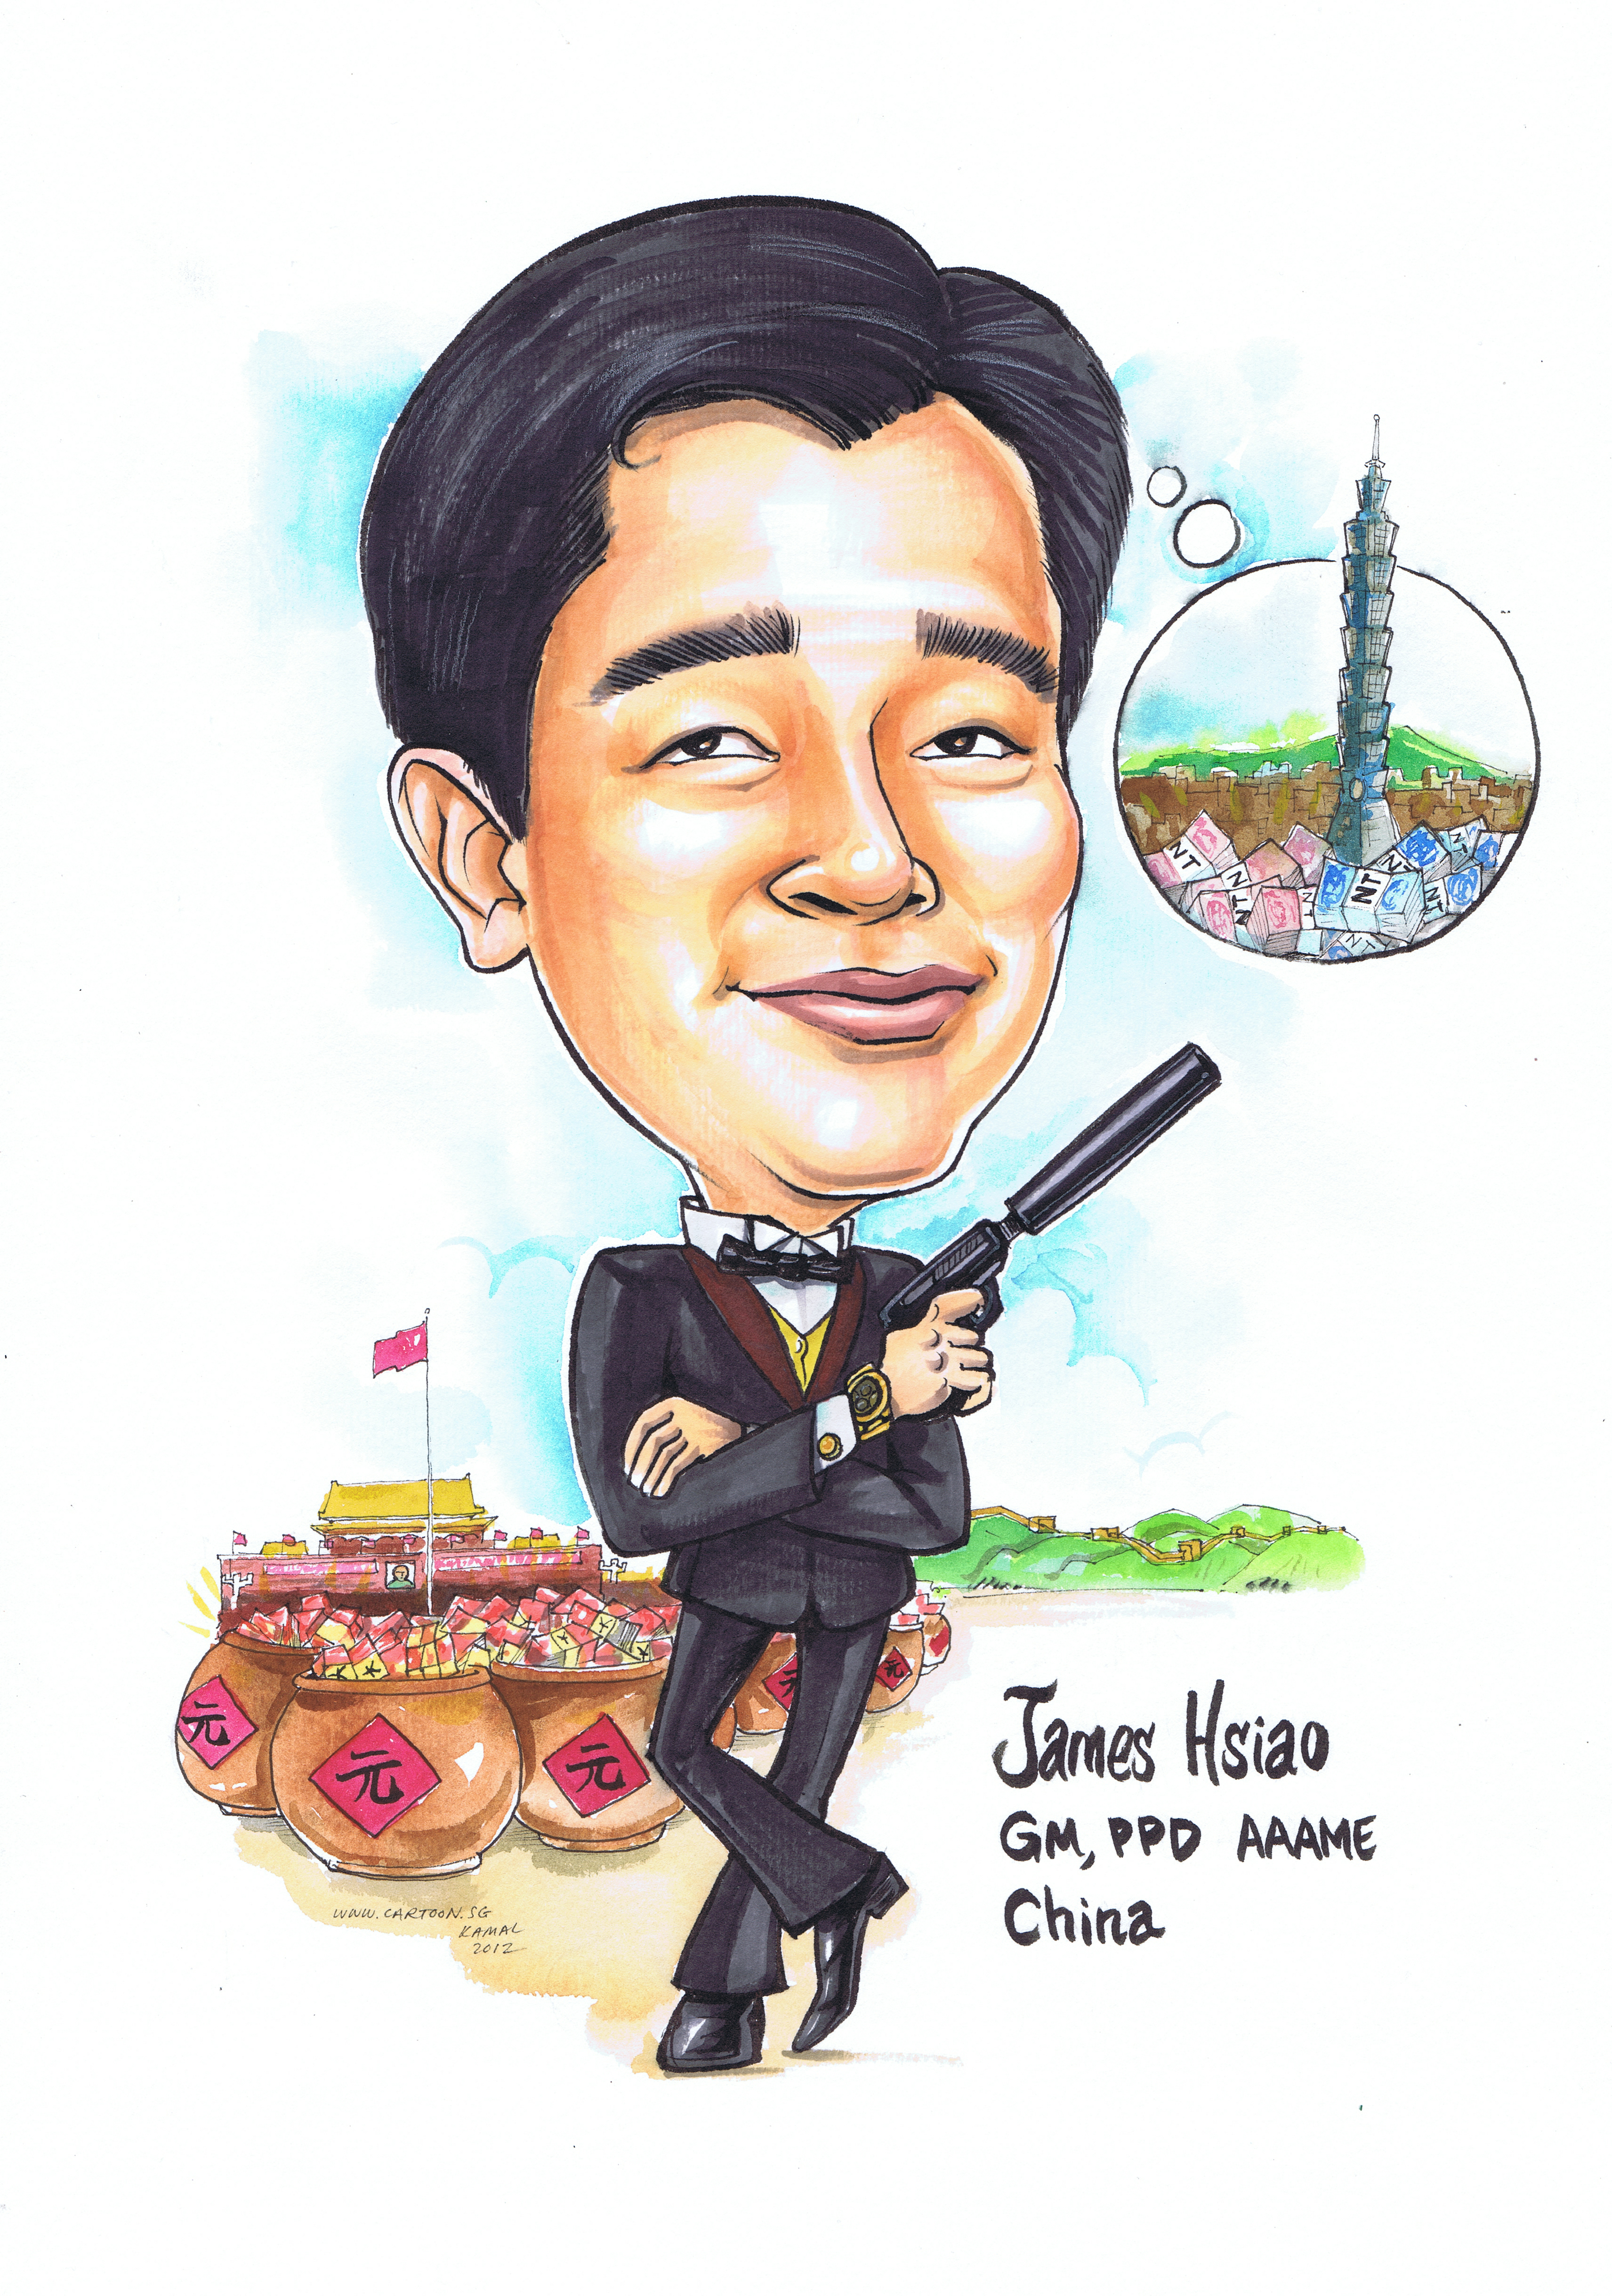 2012-07-26-caricaure-gift-china-gm.jpg